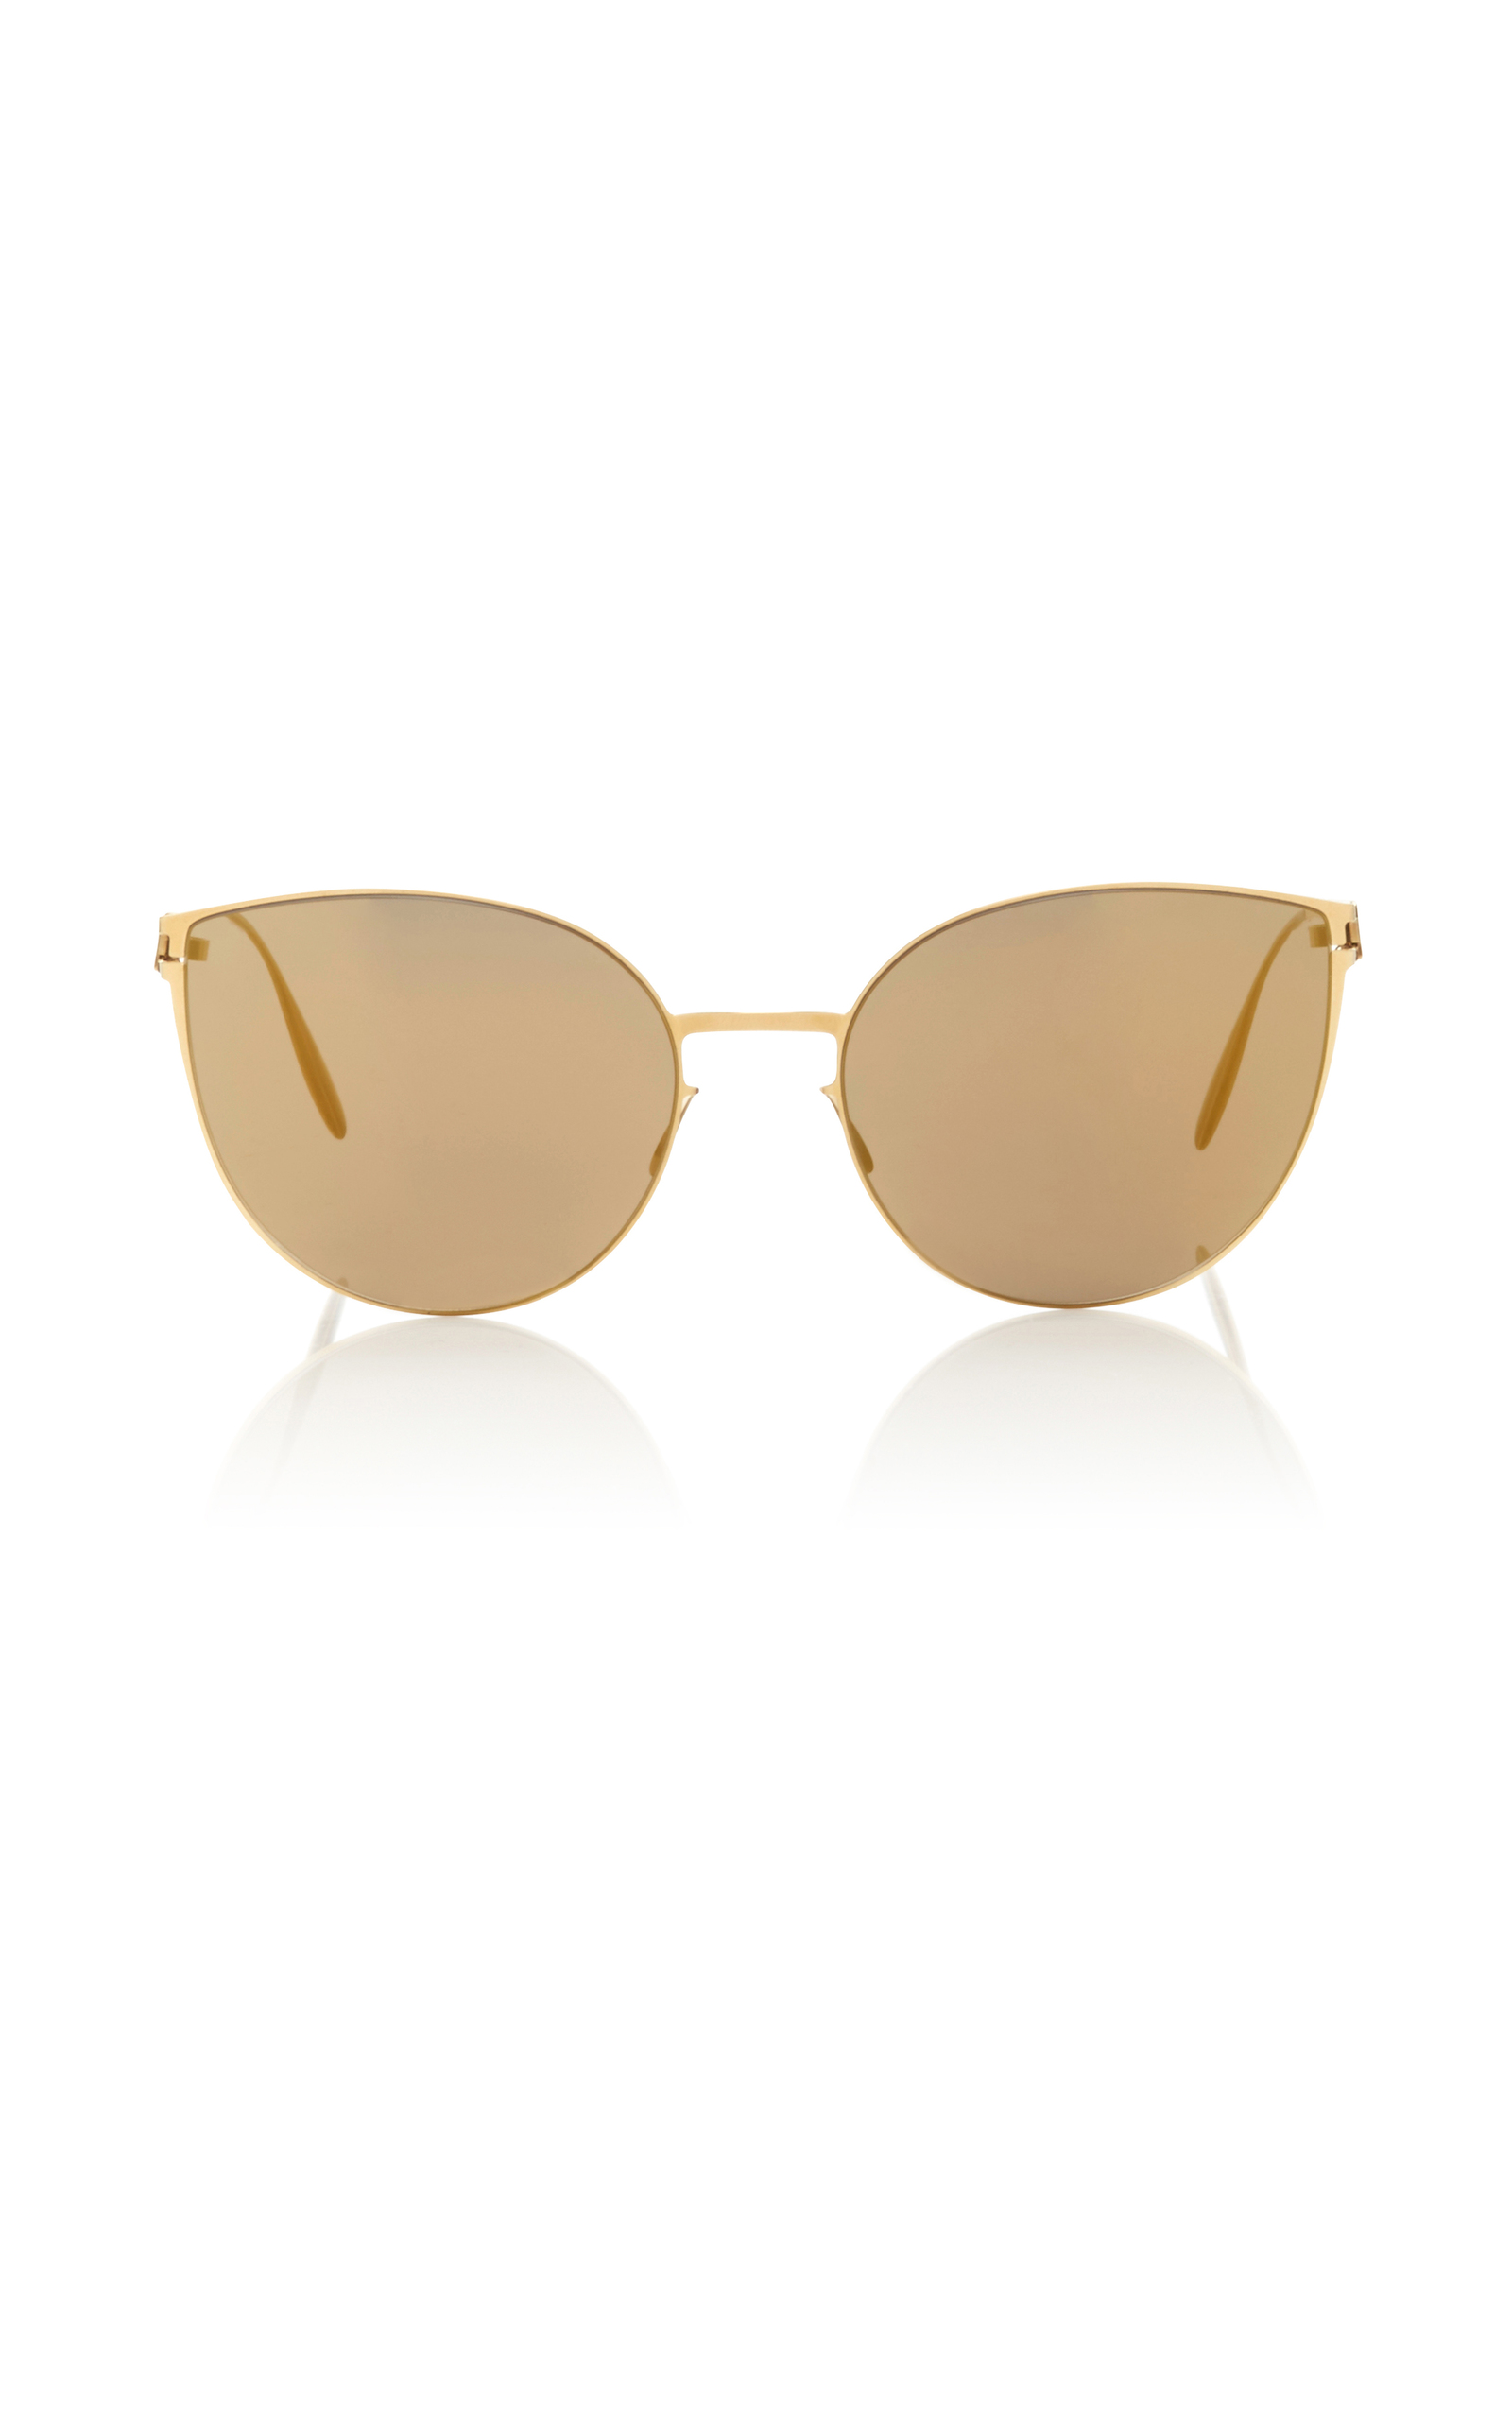 Studio7.2 Gold-Tone Sunglasses Mykita tSQI2BY8